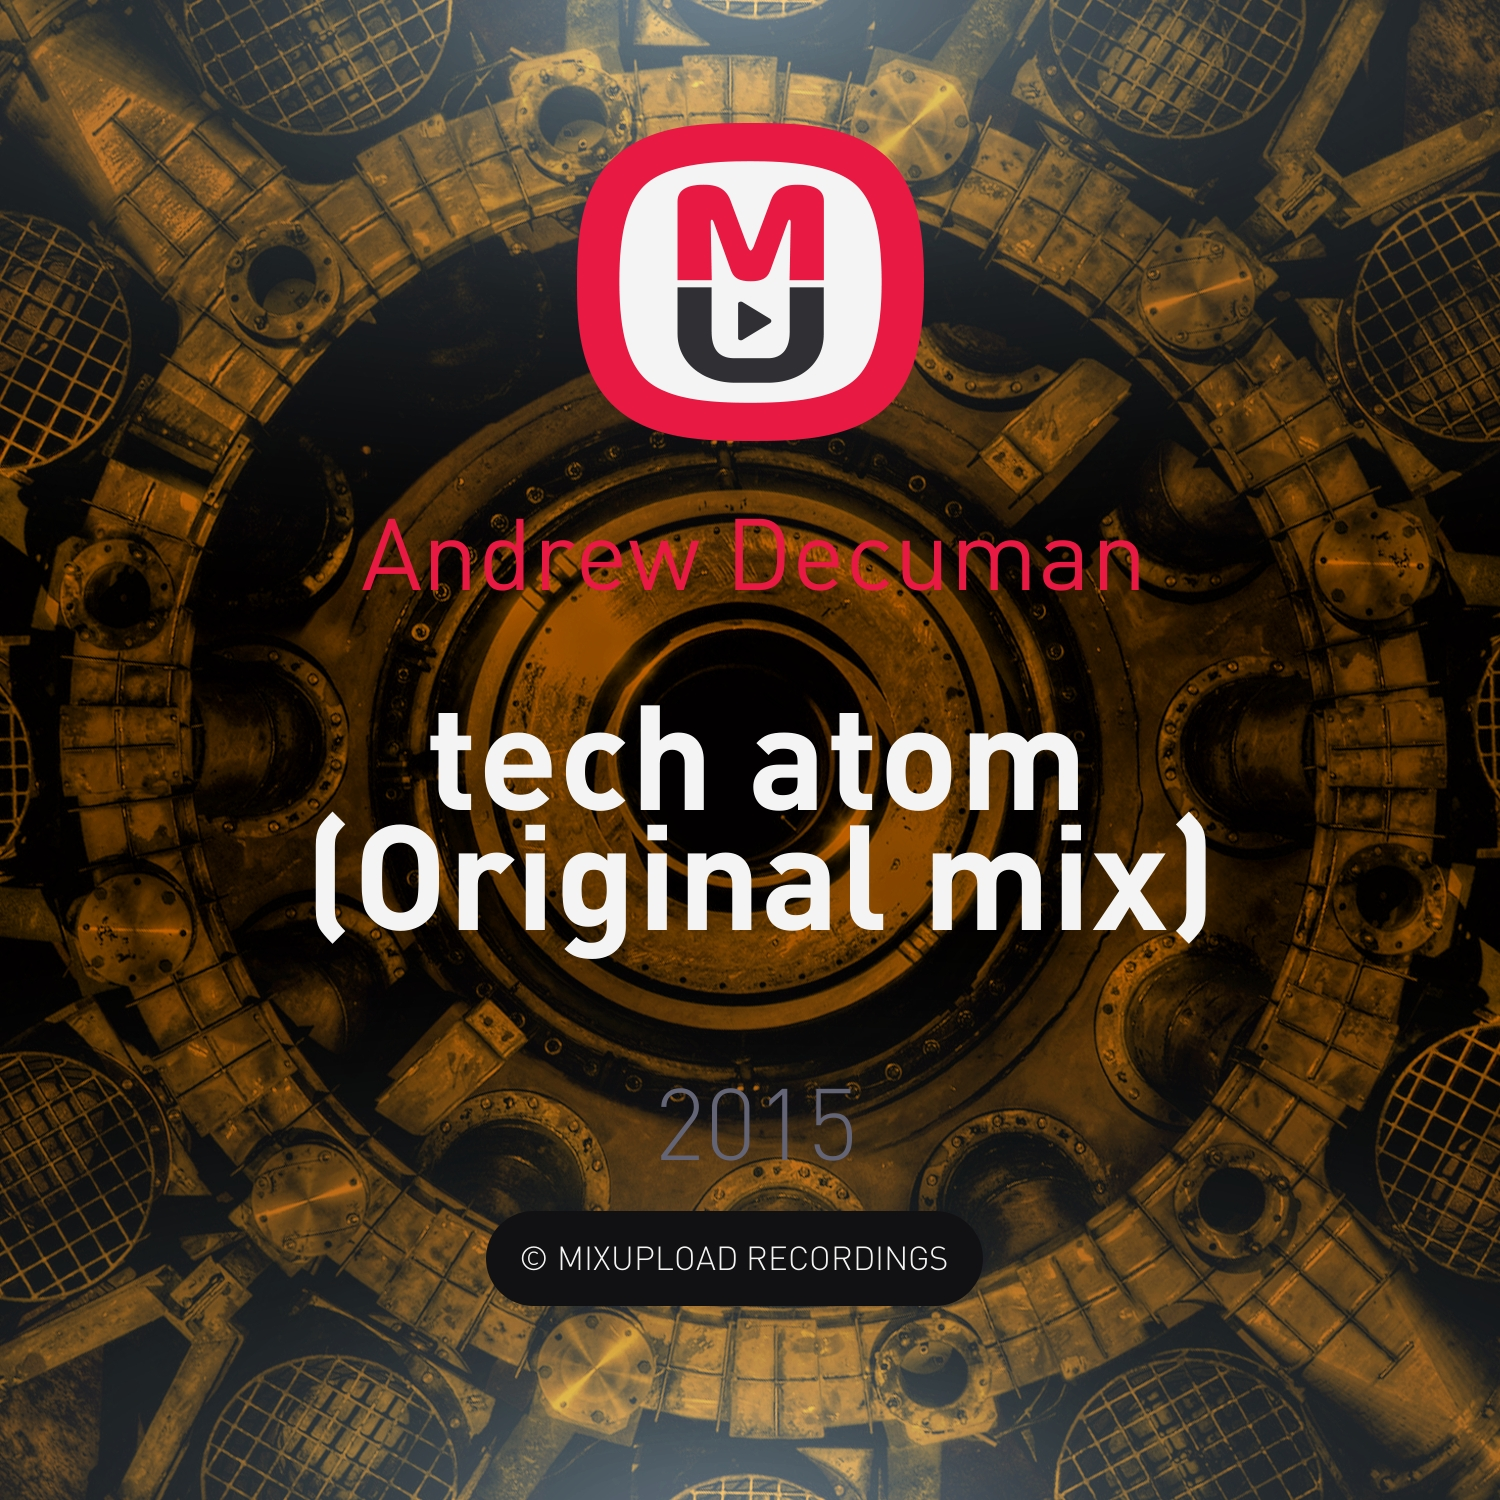 Andrew Decuman - tech atom (Original mix)